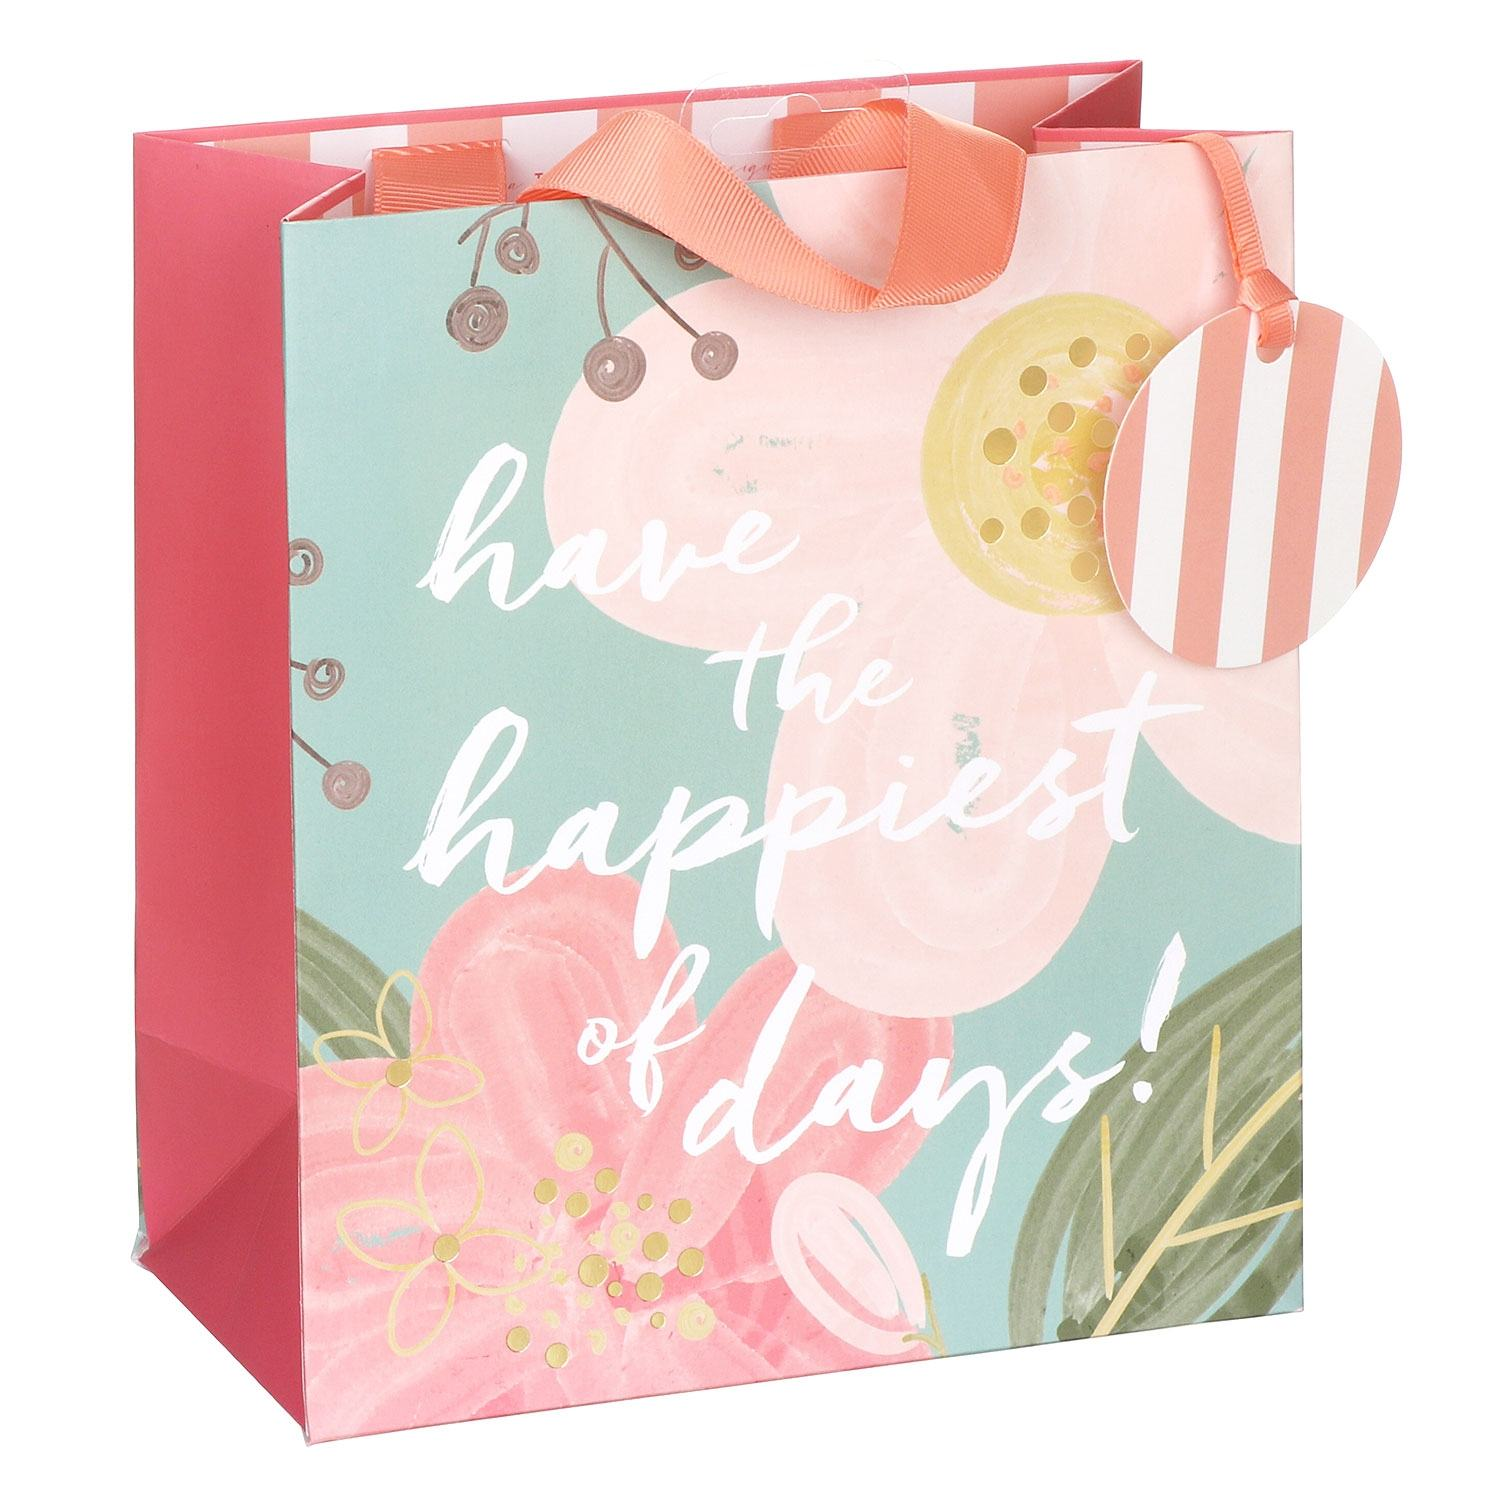 Glick Happiest Of Days Floral Medium Gift Bag